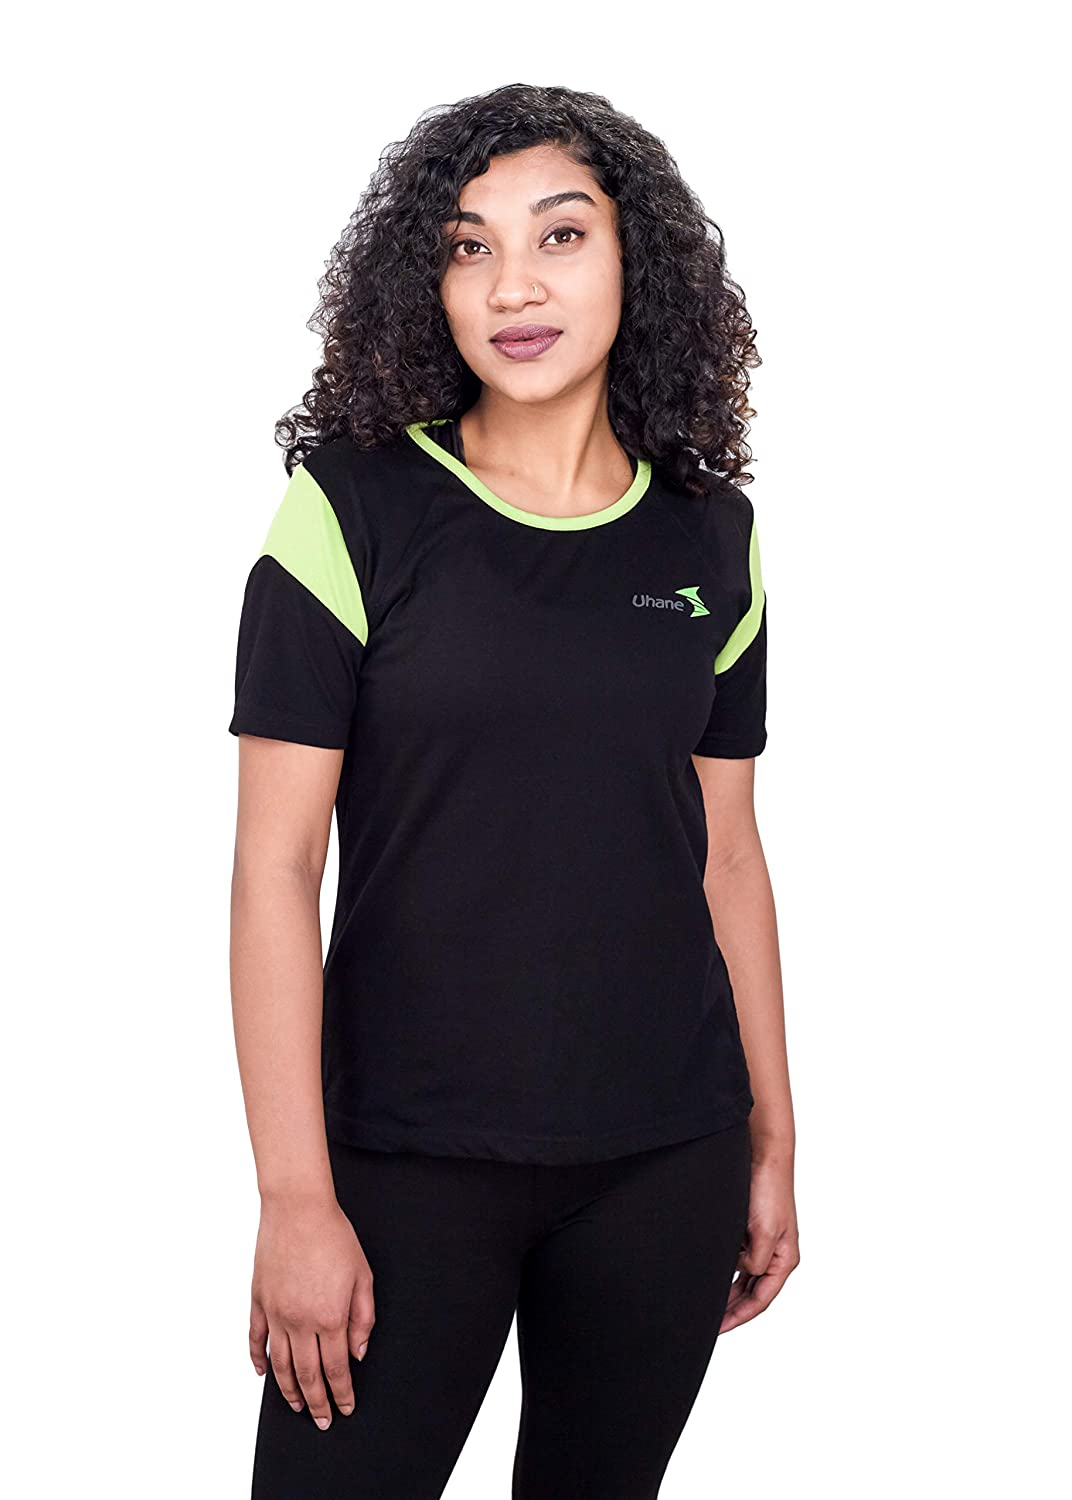 Uhane Women's Gym Classic Cotton Work-Out Round Neck Loose Fit T-Shirt (Black) Short Sleeves Top for Sports and Fitness